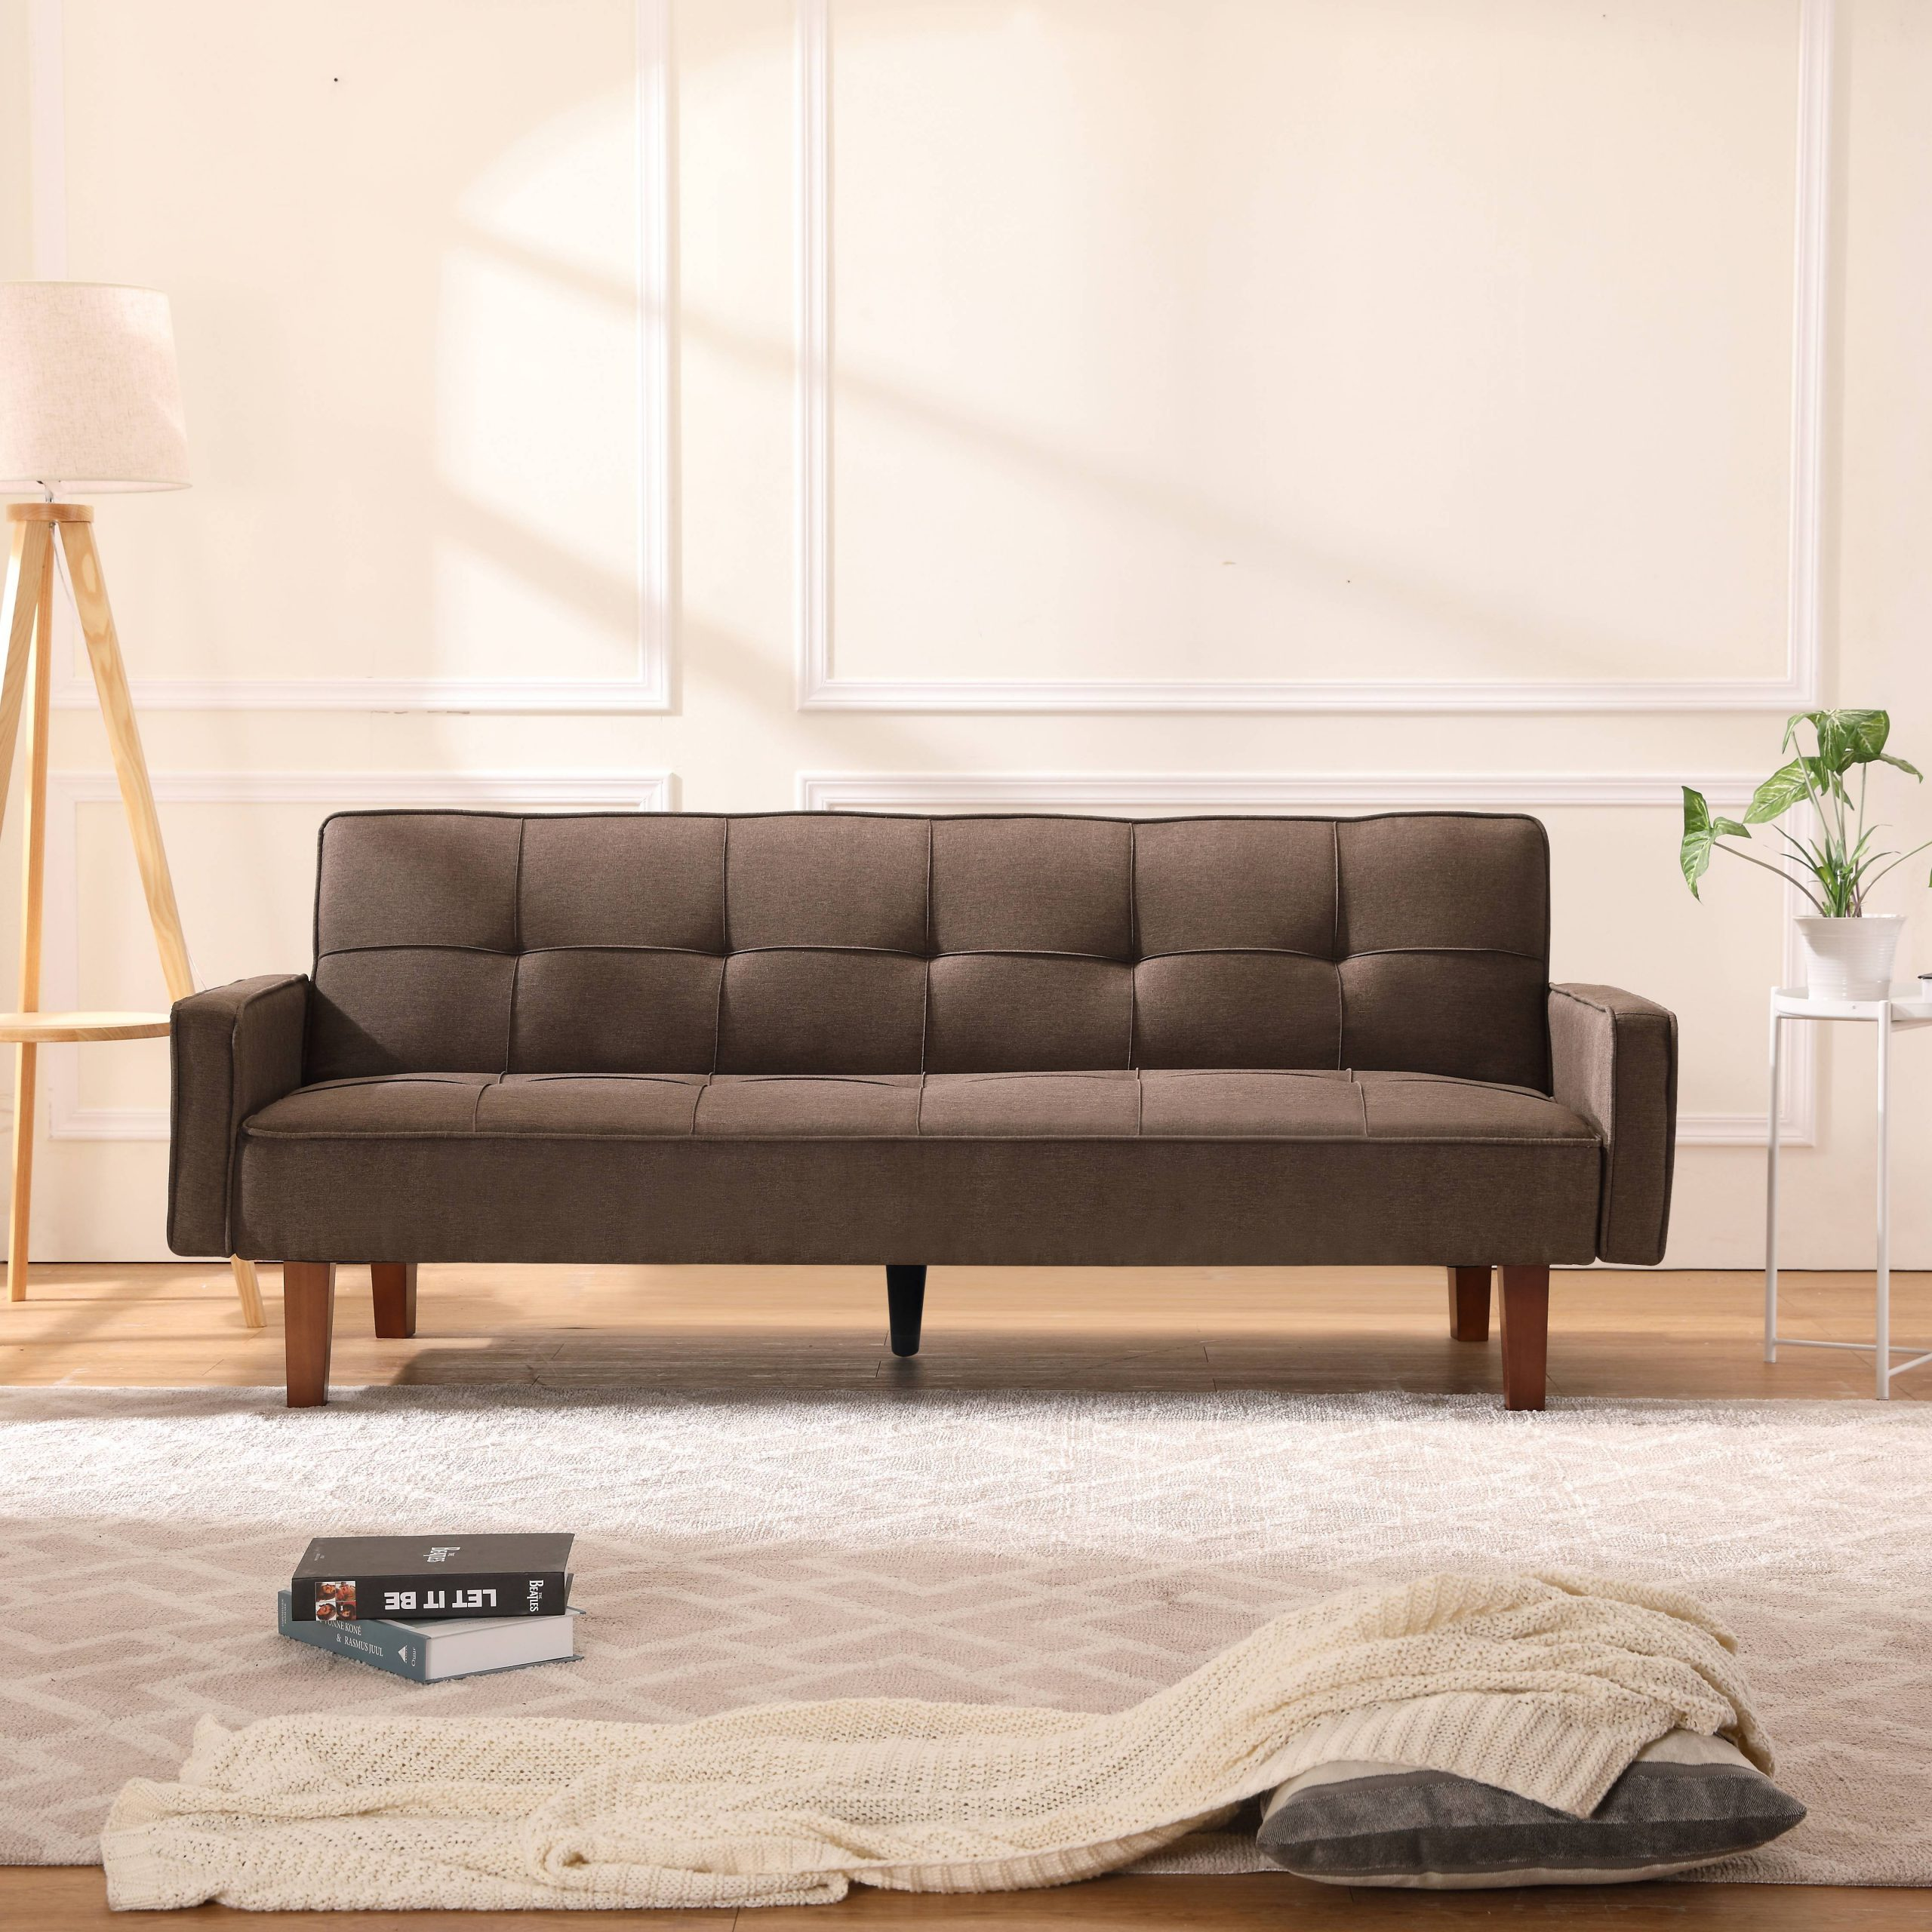 Clearance! Convertible Sofa Bed, Multi Function Folding Inside Convertible Sofas (View 12 of 15)